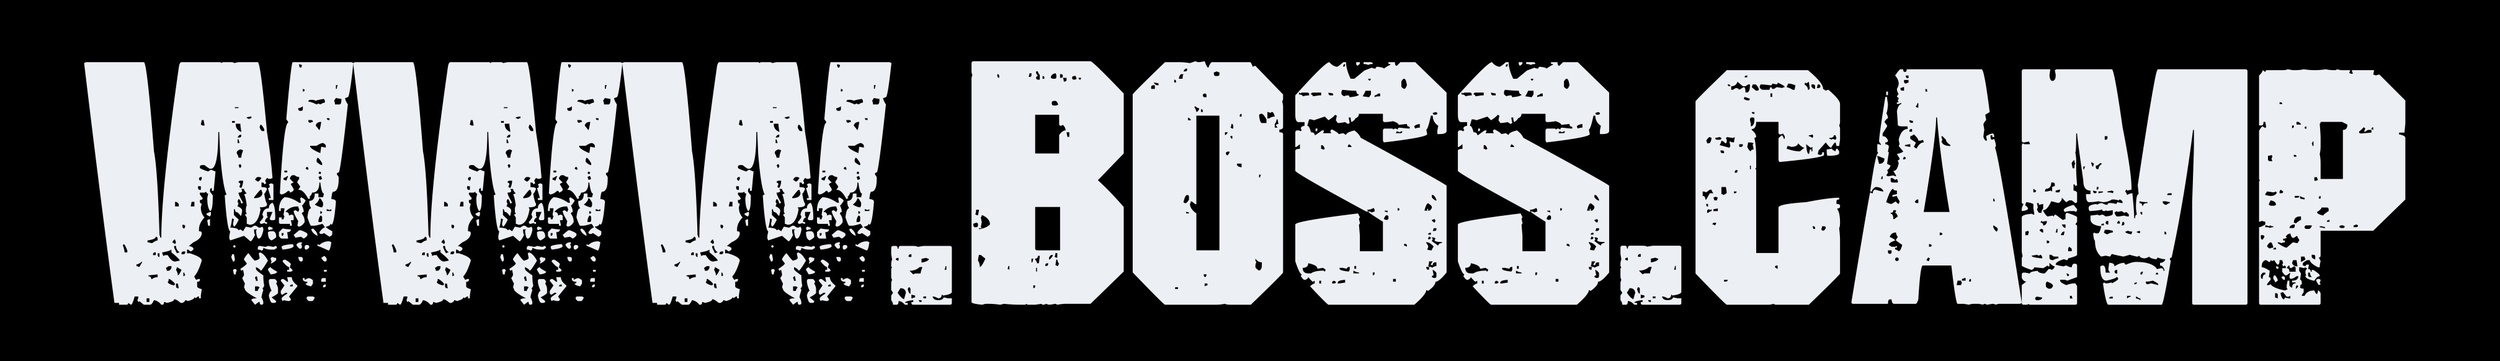 www.boss.camp join now jpeg